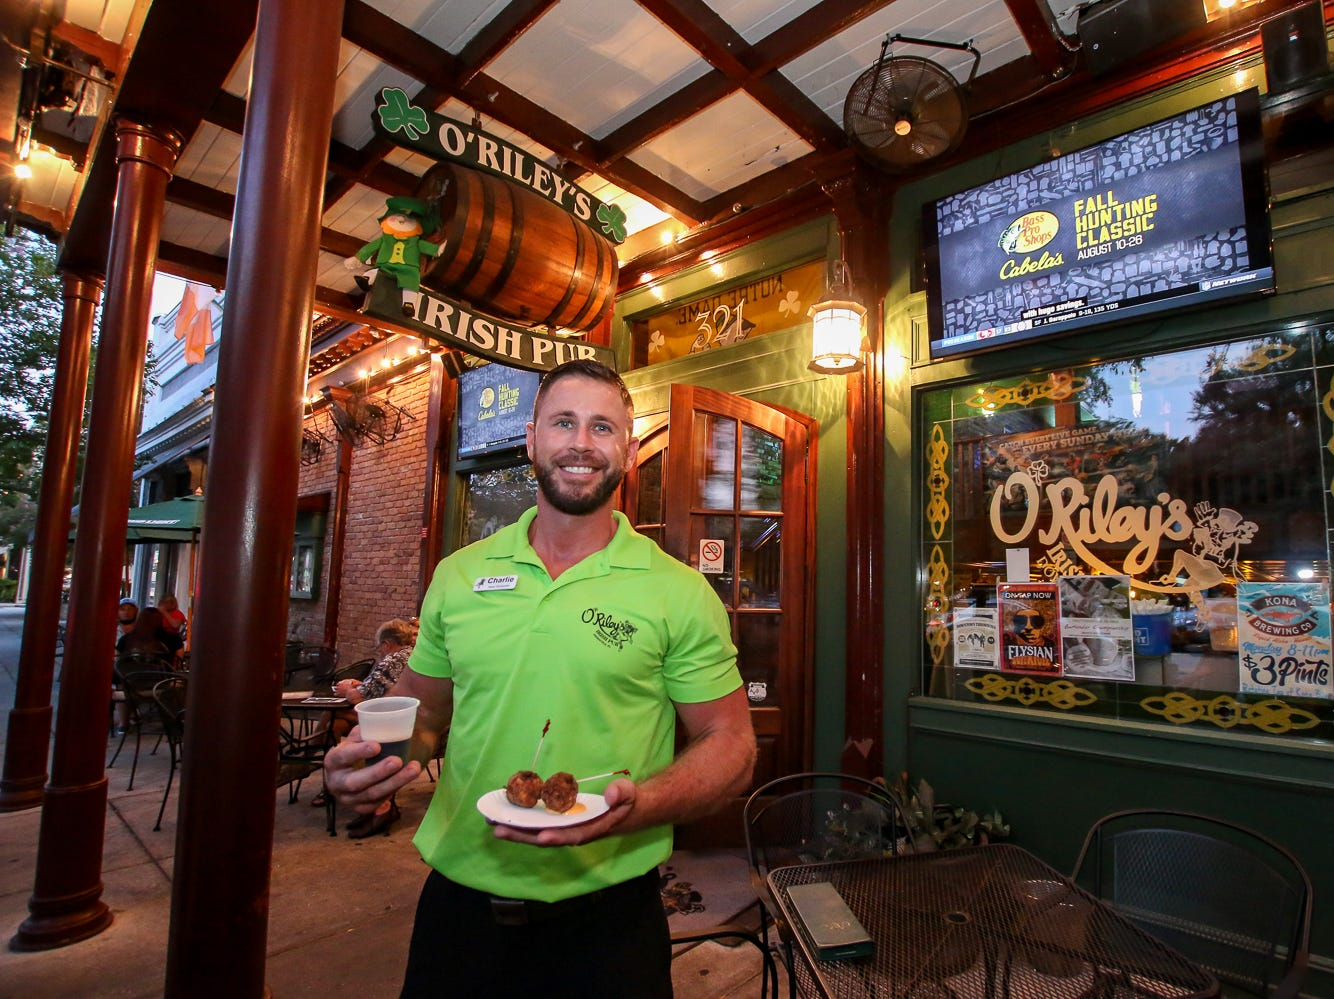 O'Riley's Irhs Pub offered Irish Boxties and a Guinness Draught during the Pensacola News Journal's 5th annual Tastemakers restaurant crawl on Saturday, August 25, 2018. The two-night event included about a dozen restaurants that each featured a food and drink item reoresenting a specific country, such as the United States, Mexico, Argentina and more.